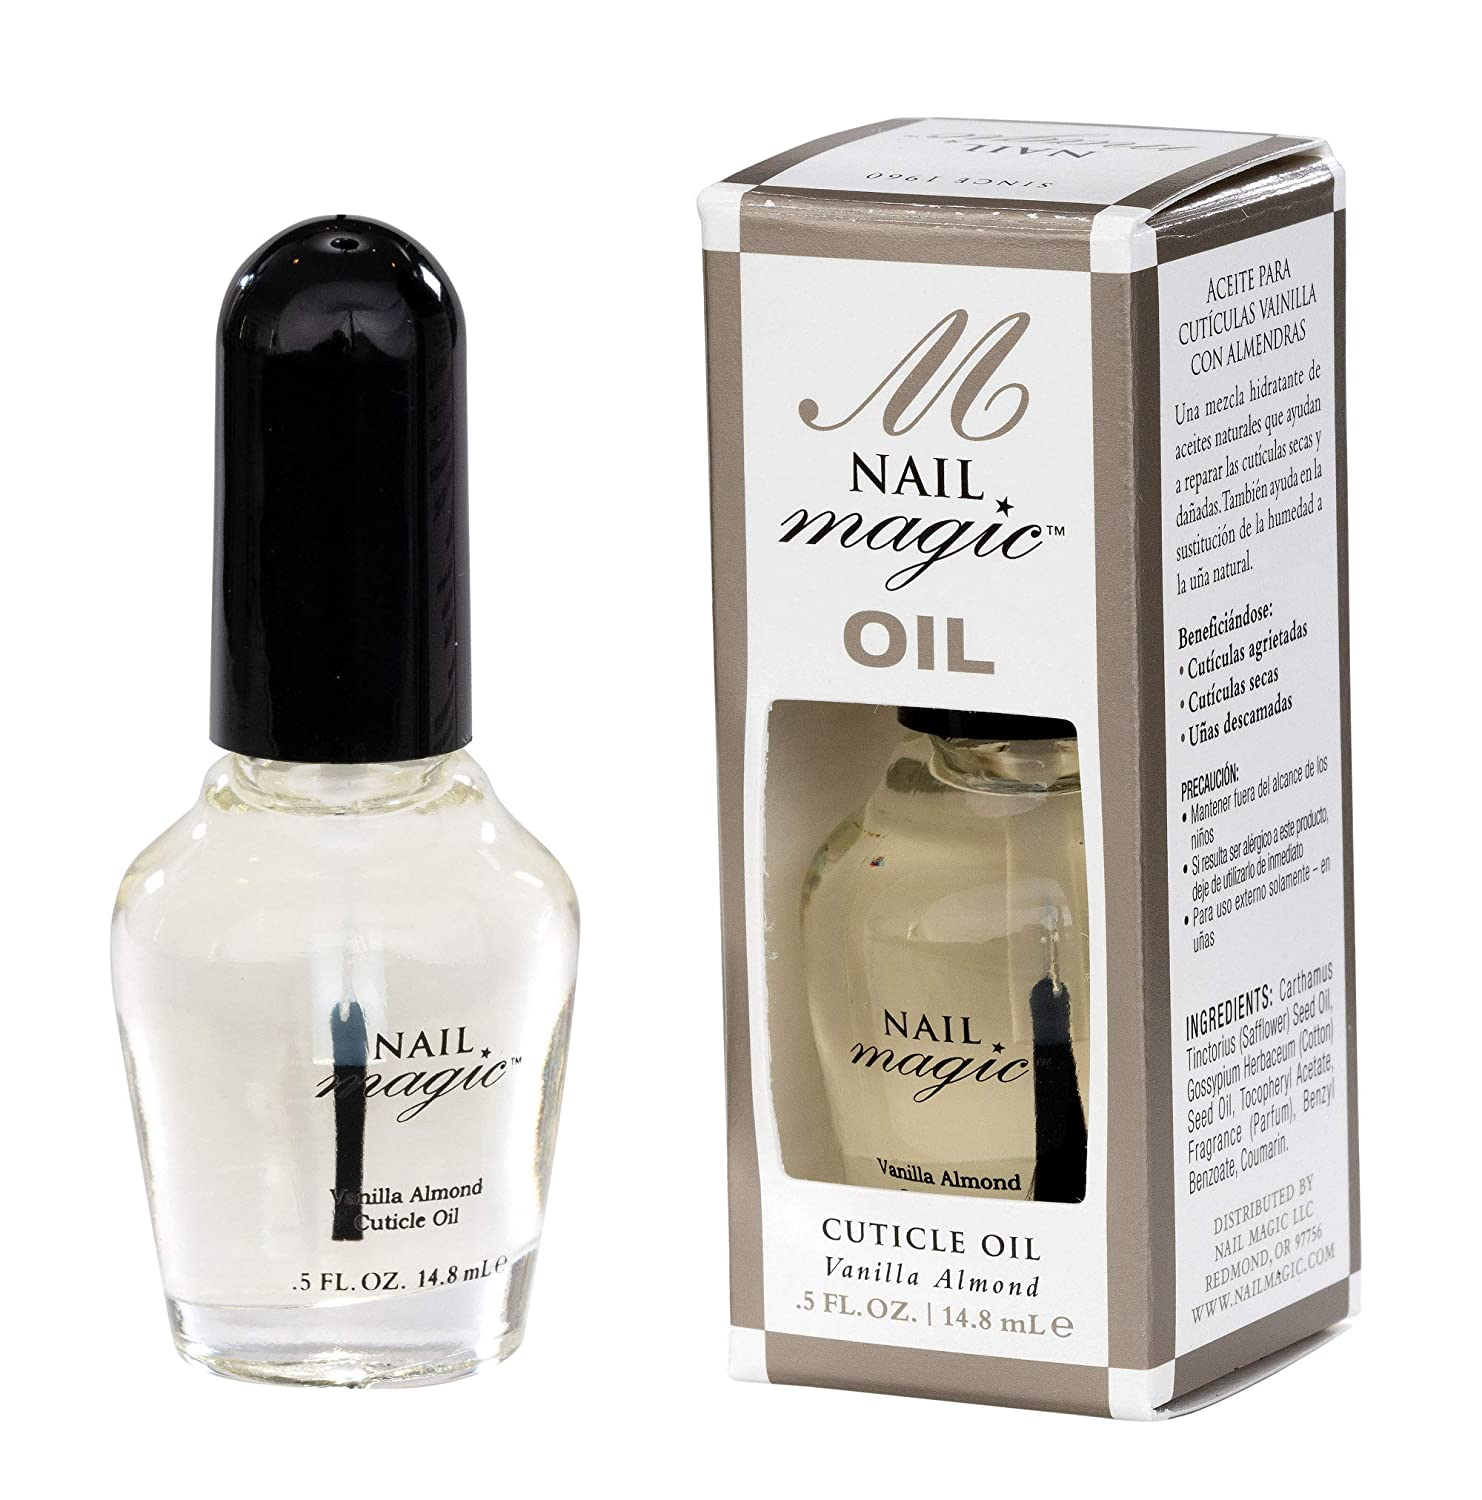 Nail Magic Nail Cuticle Oil, Vanilla Almond, Assists with Peeling Fingernails, Reduces cracking cuticles, 0.5 fluid oz: Beauty